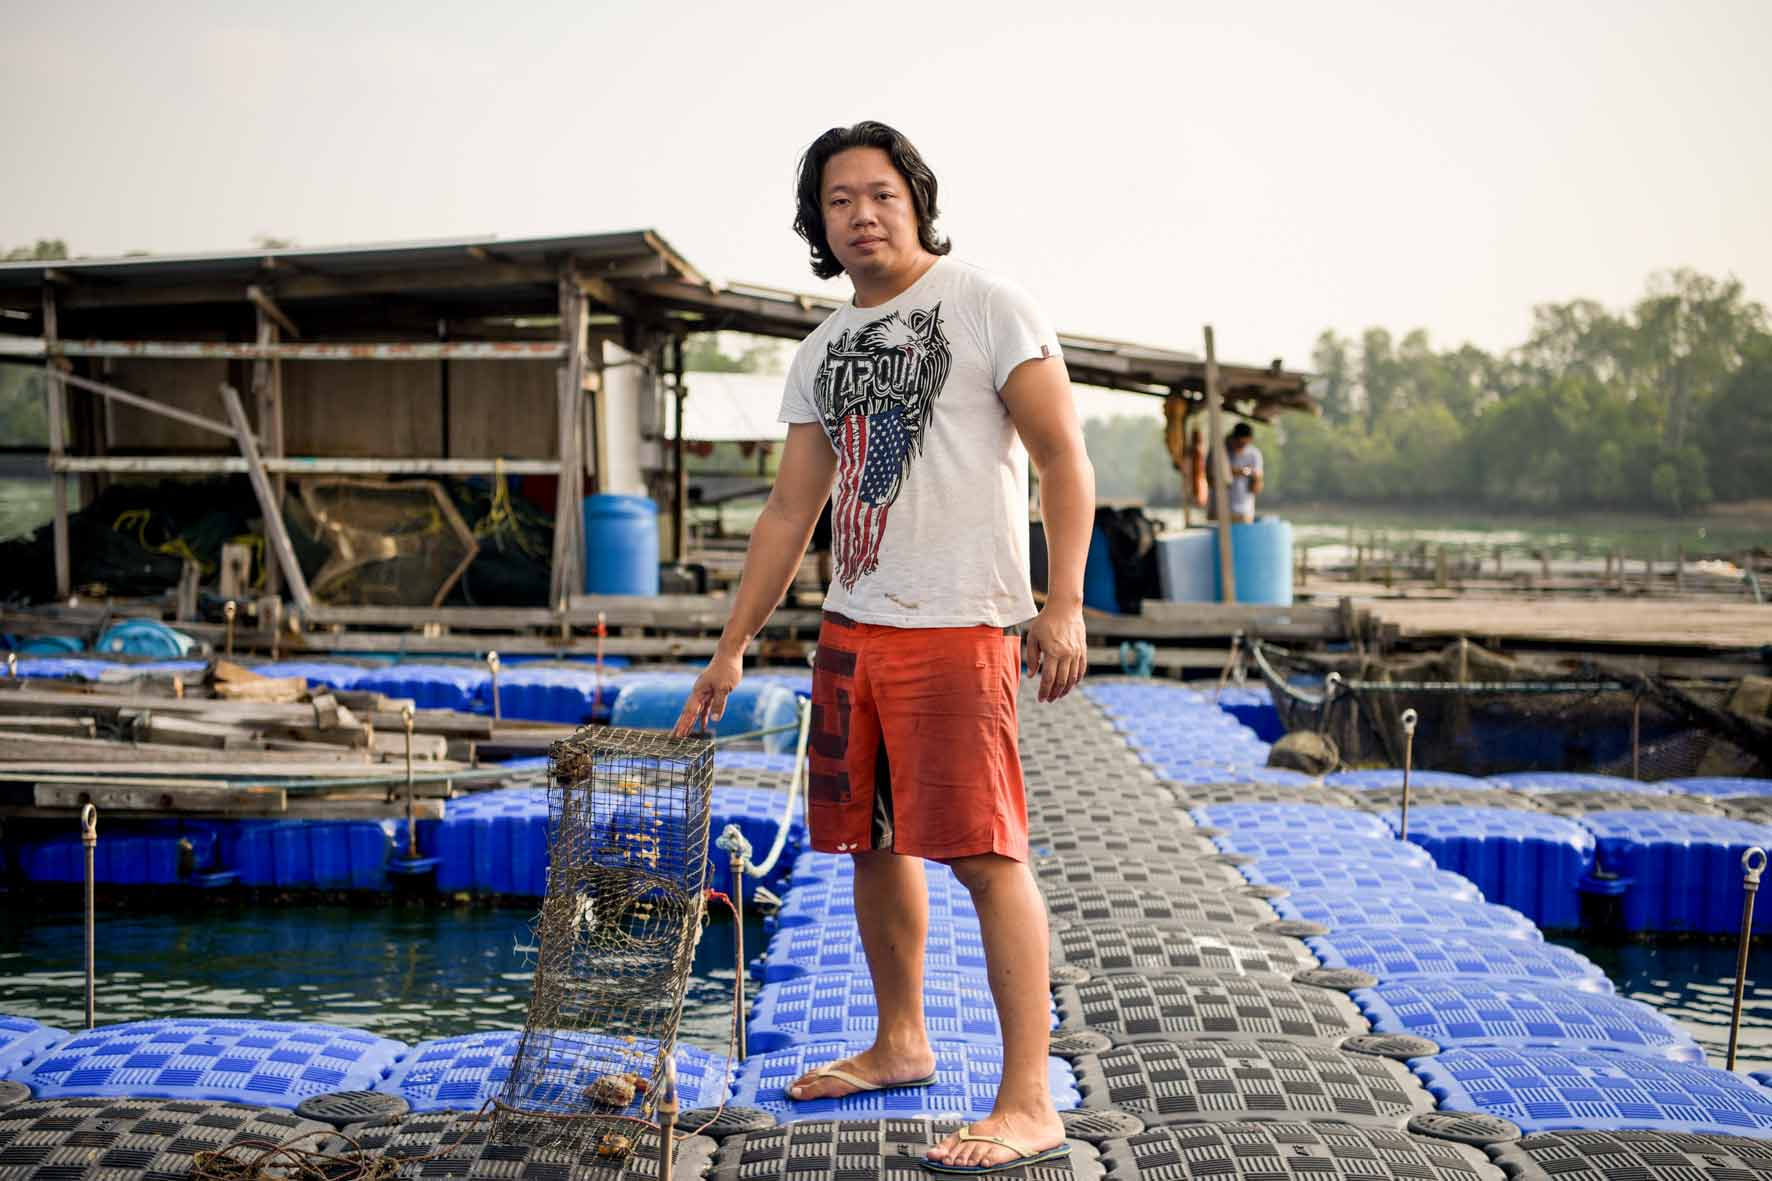 This Fish Farmer Dreams of Saving the Sea - Temasek, 31 March 2018